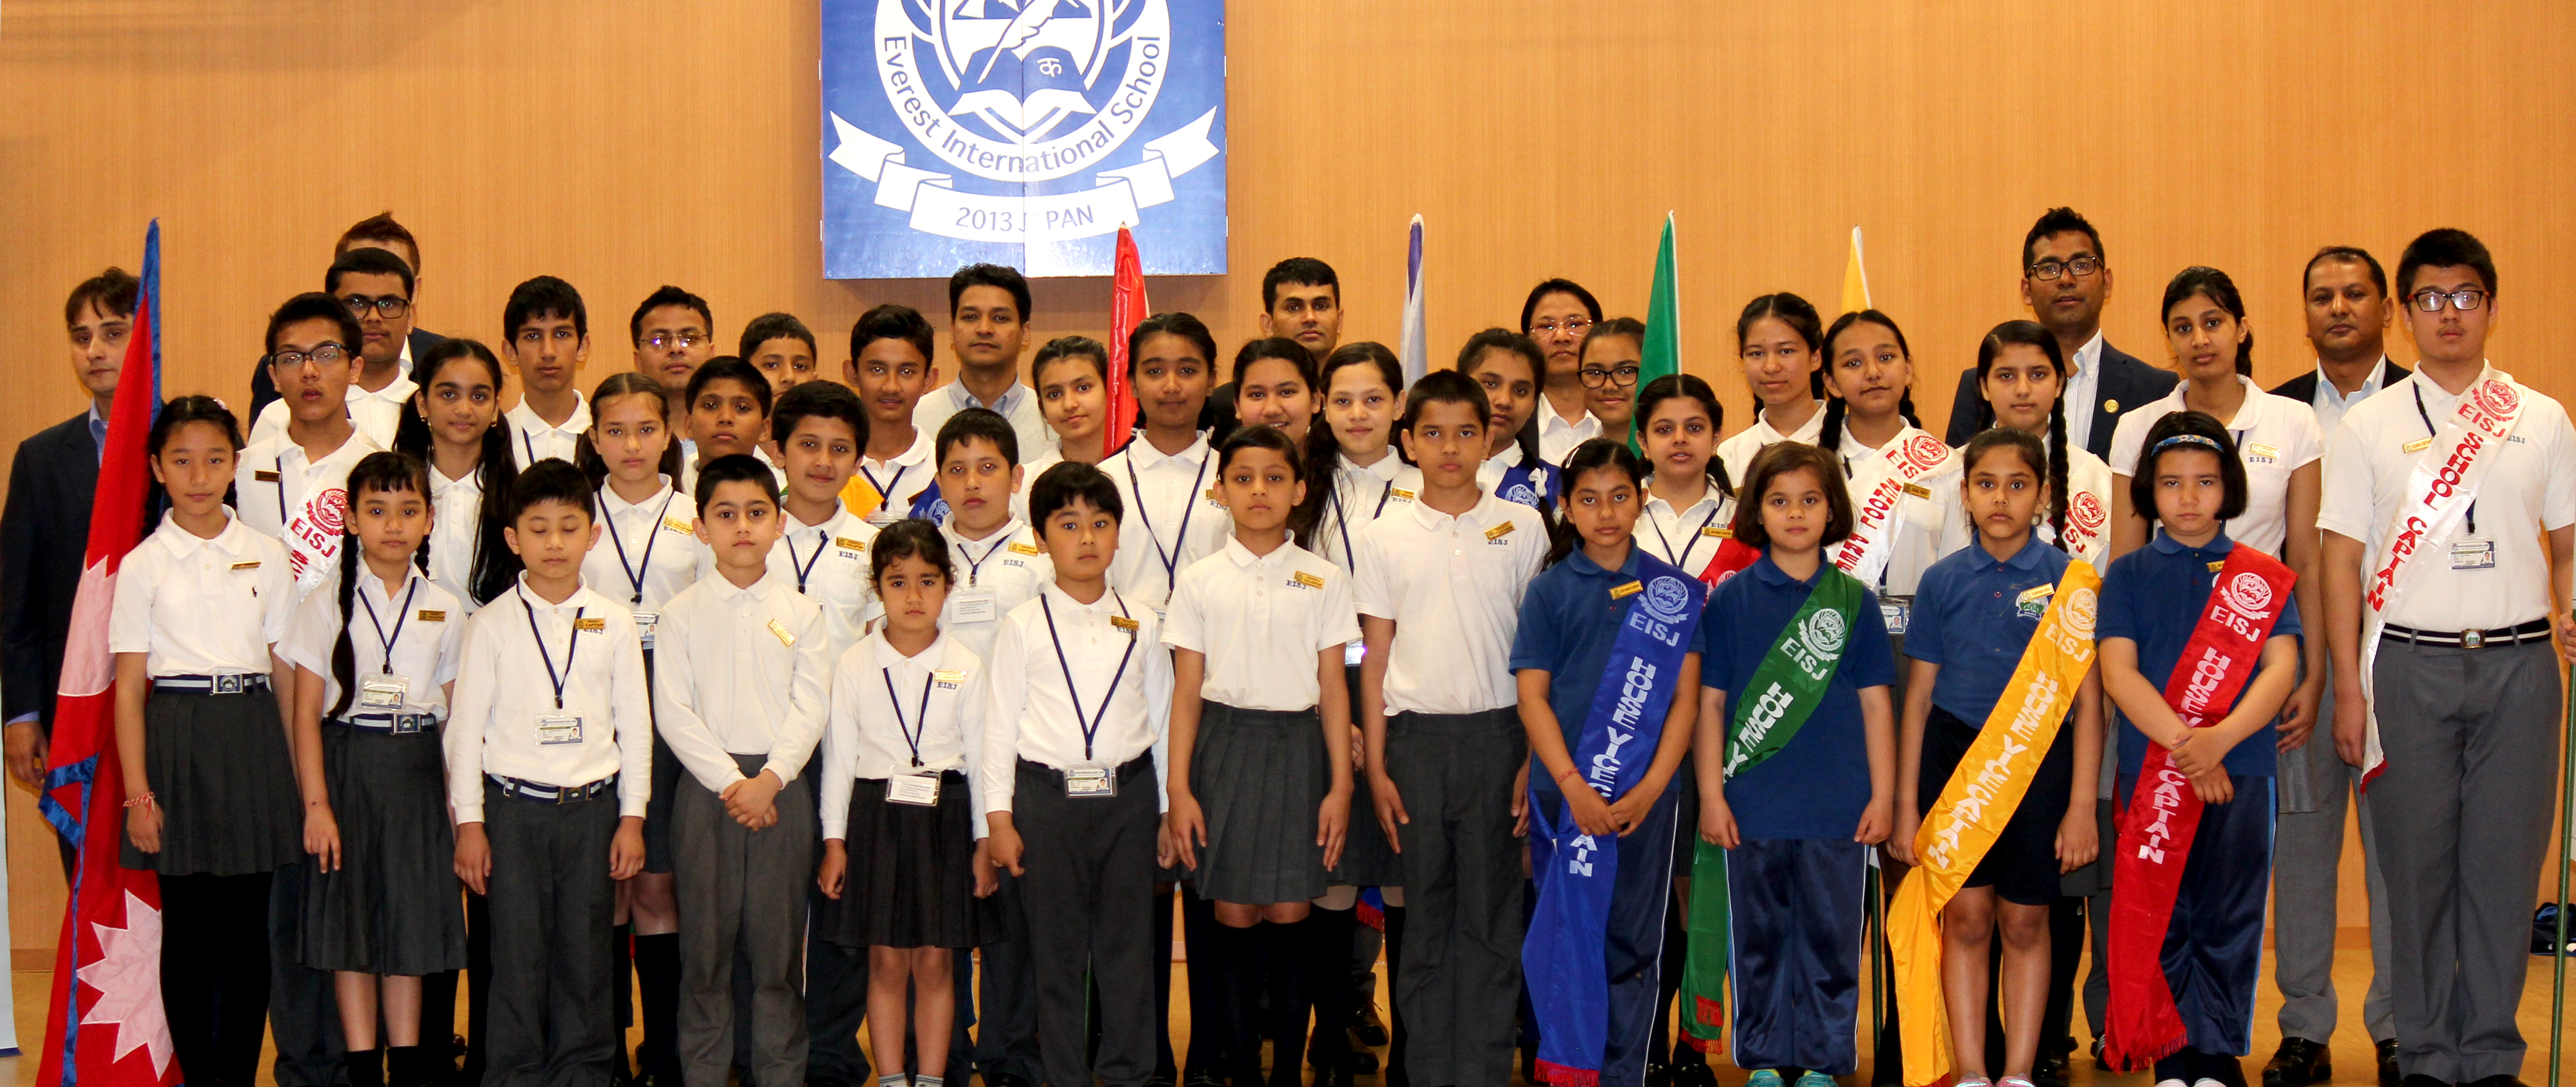 School students with Chairman, Principal, Vice Principal and Teachers